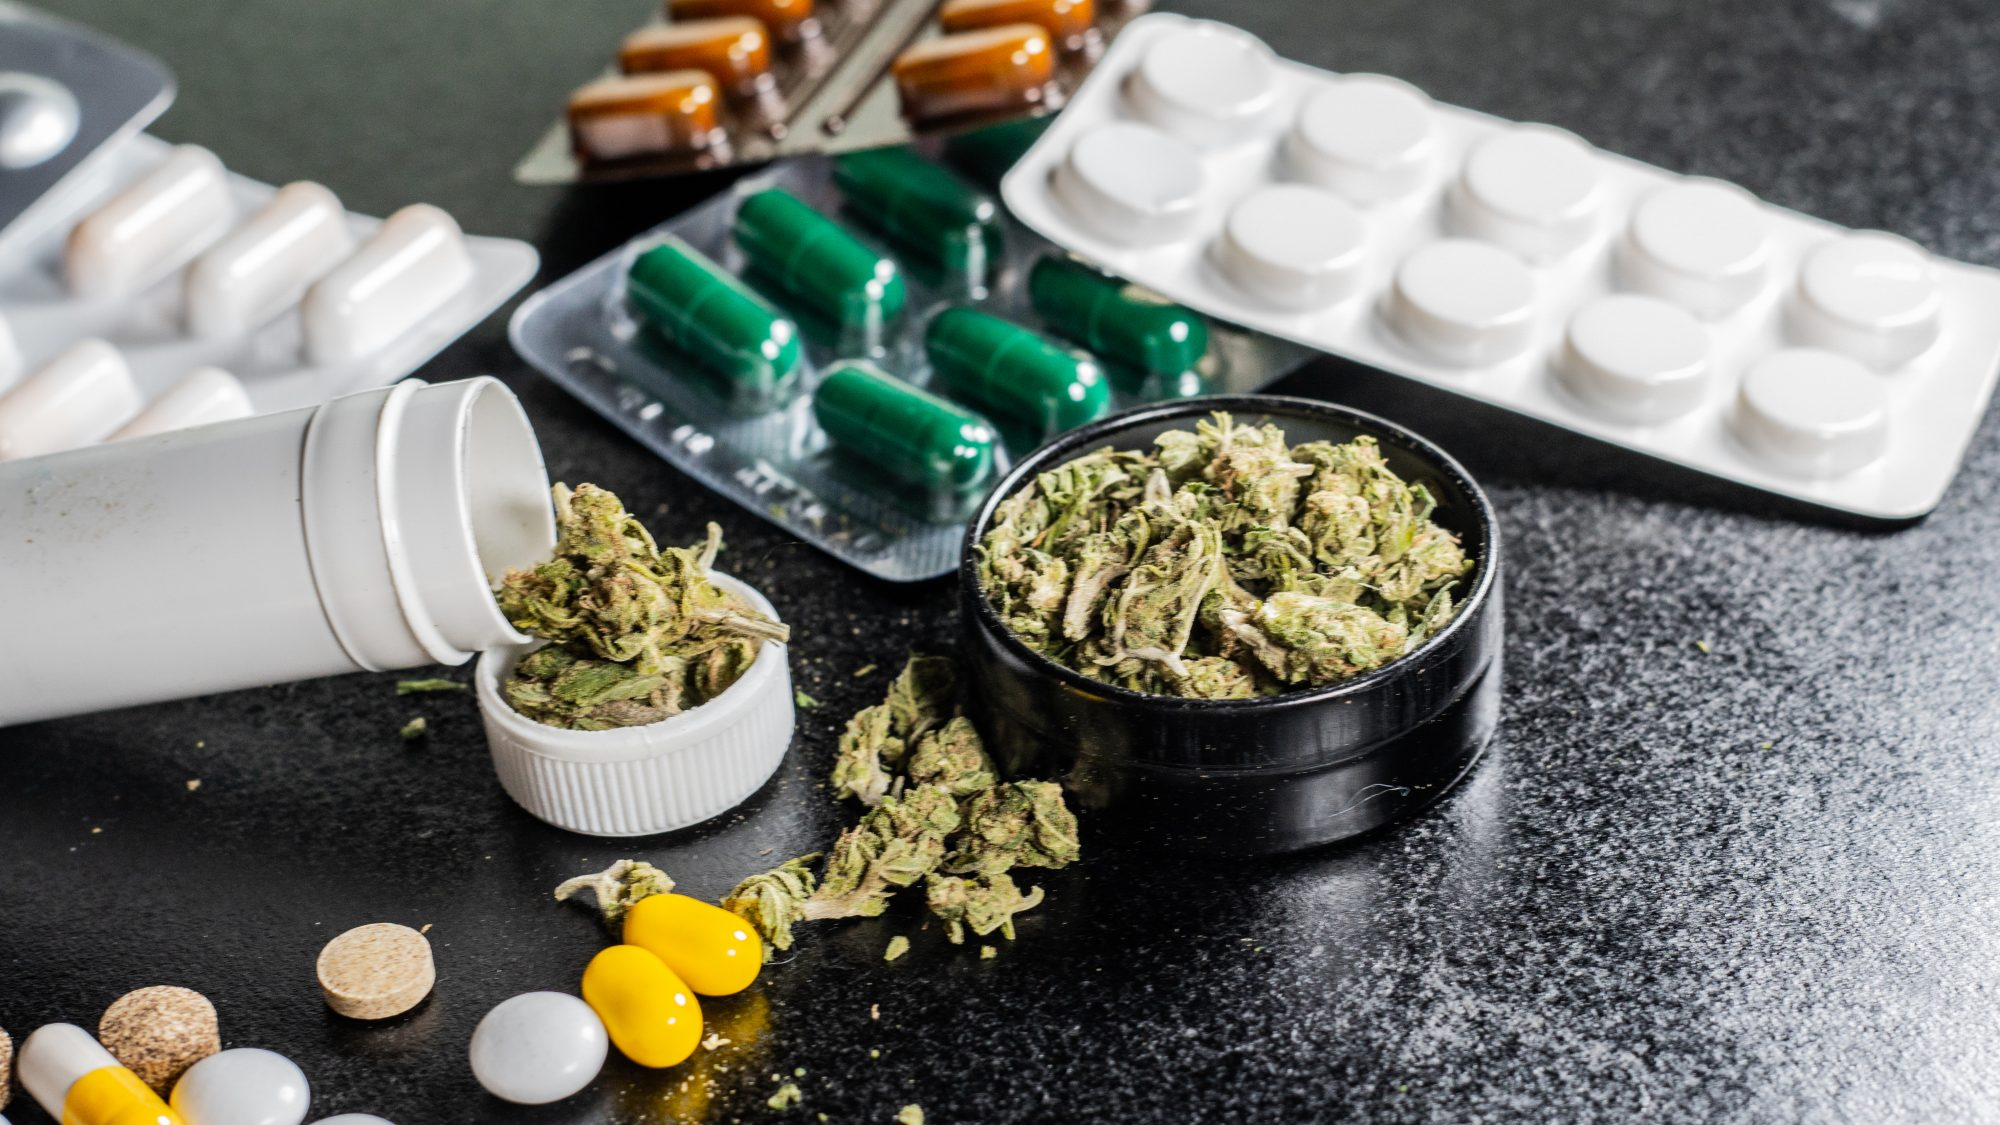 Cannabis-based medicines as a treatment for epilepsy in the UK